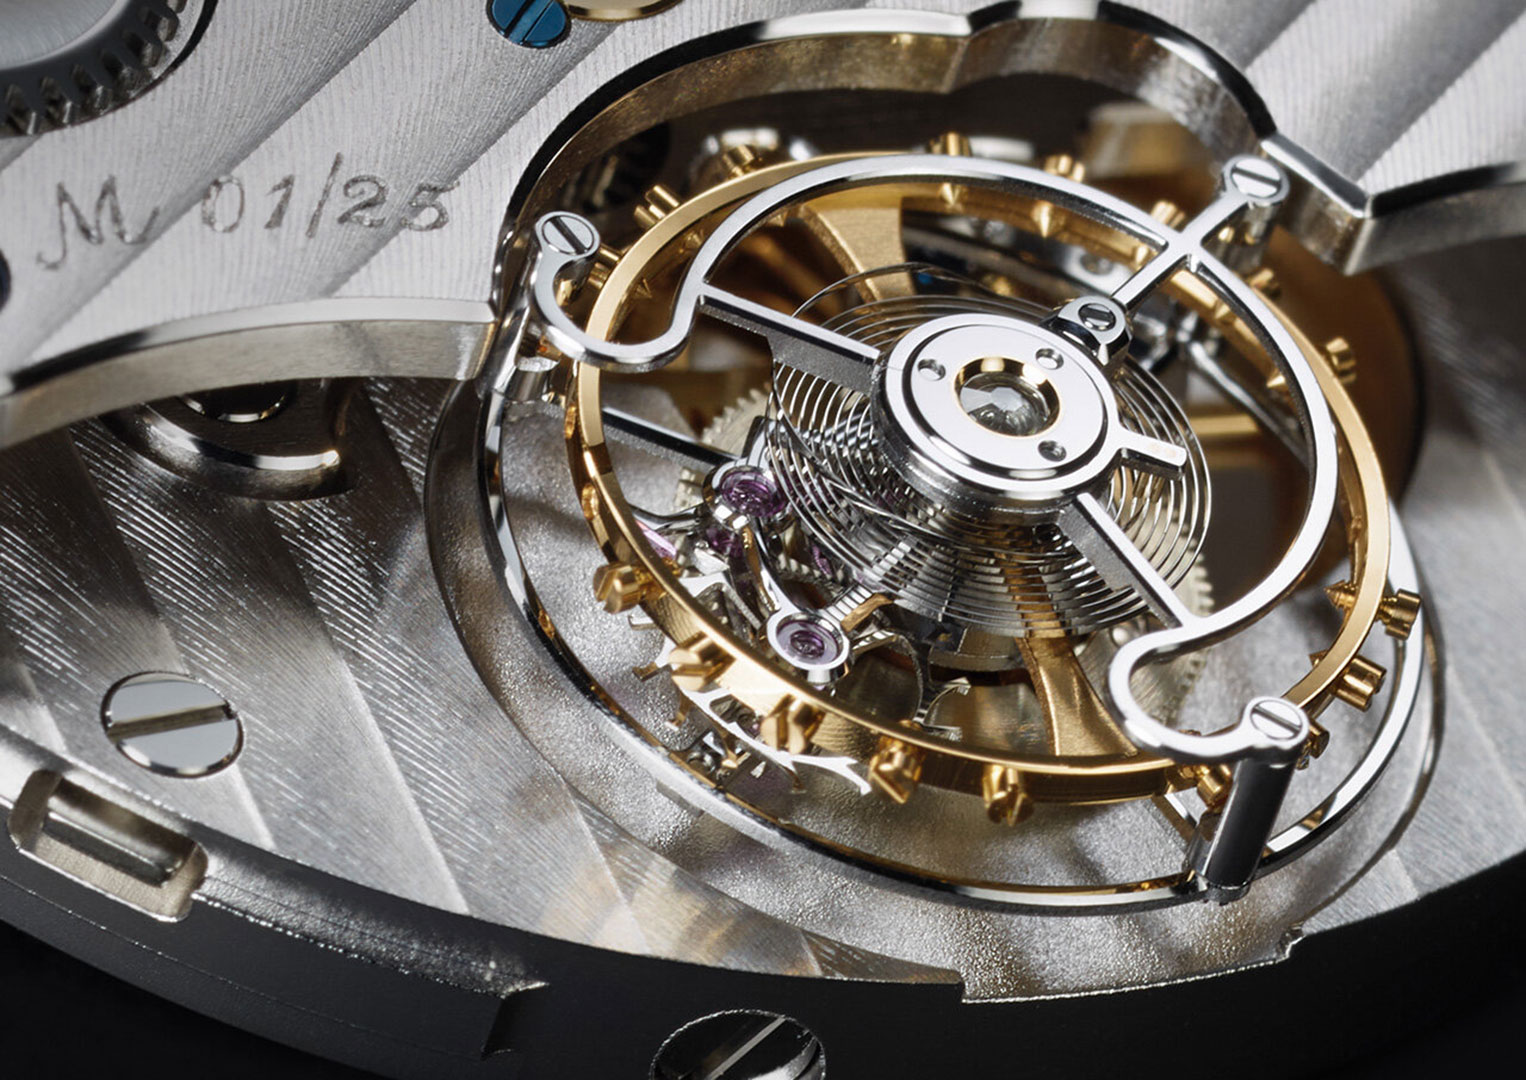 The Glashütte Original Alfred Helwig Tourbillon 1920 is limited to just 25 pieces and costs just under £100,000